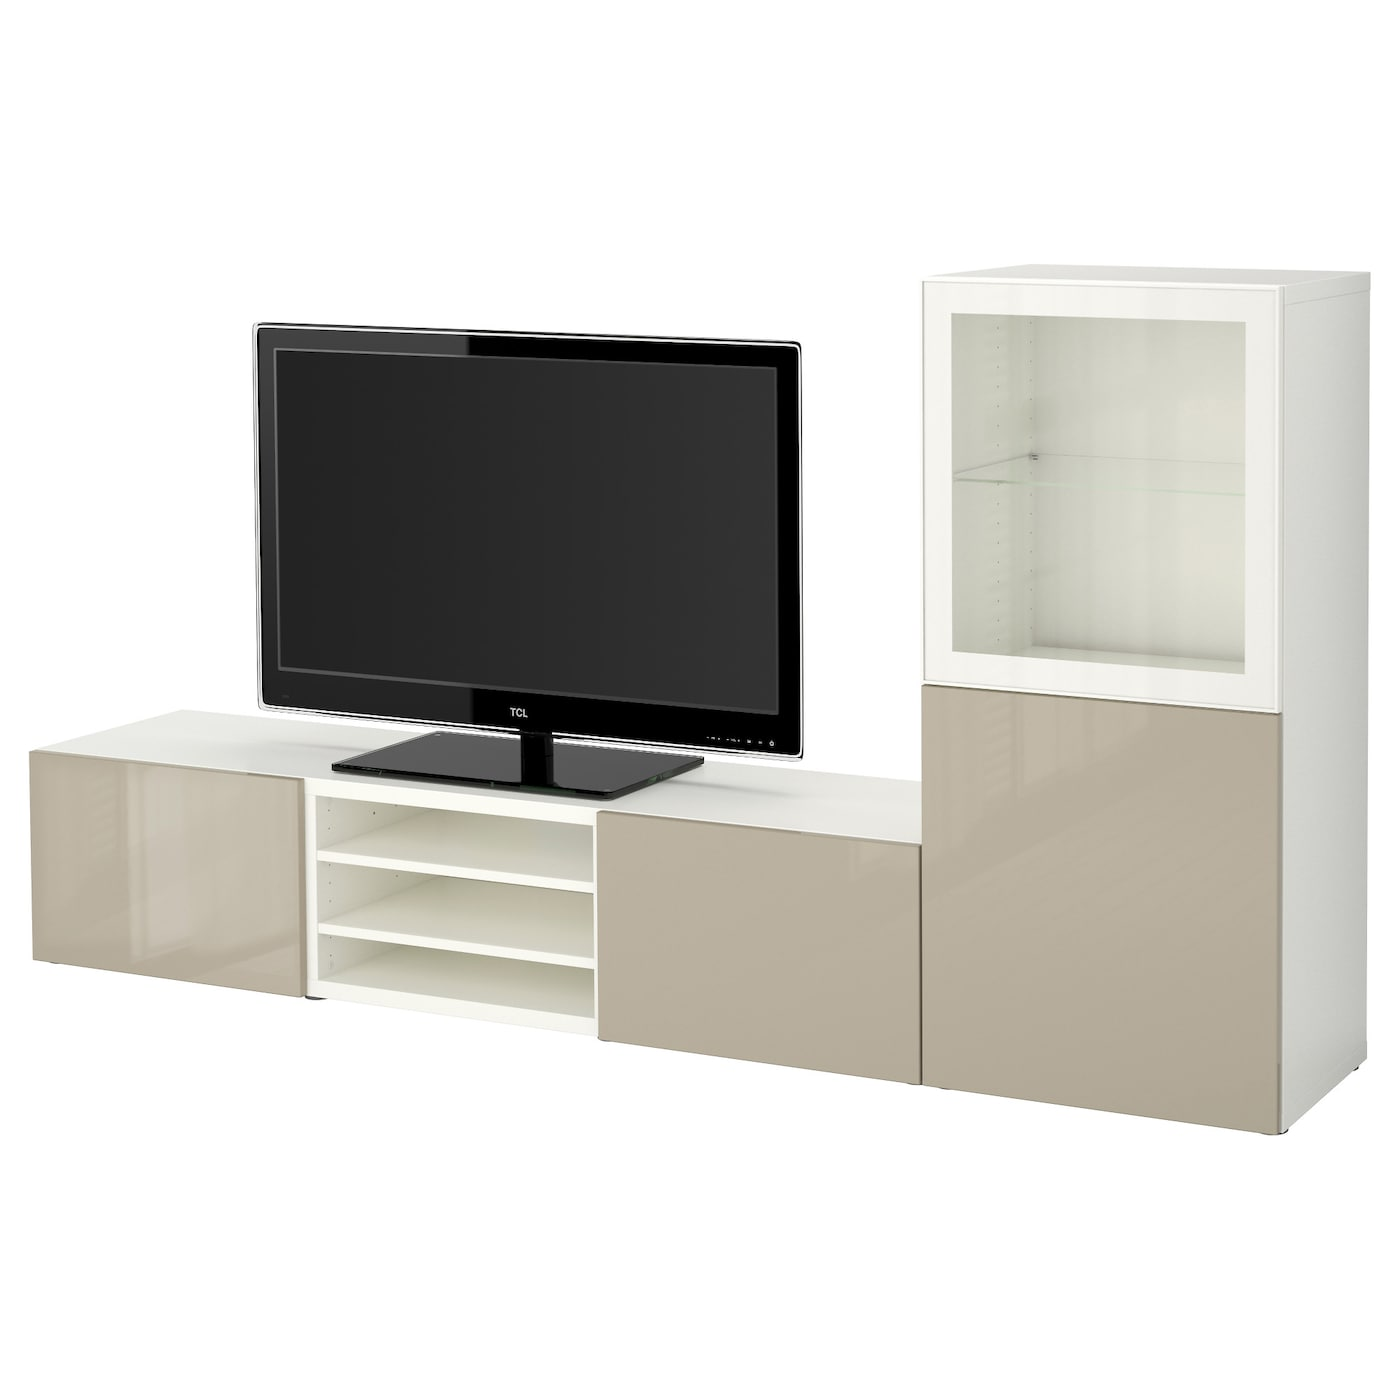 Grand Meuble Tv Ikea # Grand Meuble Tv Ikea